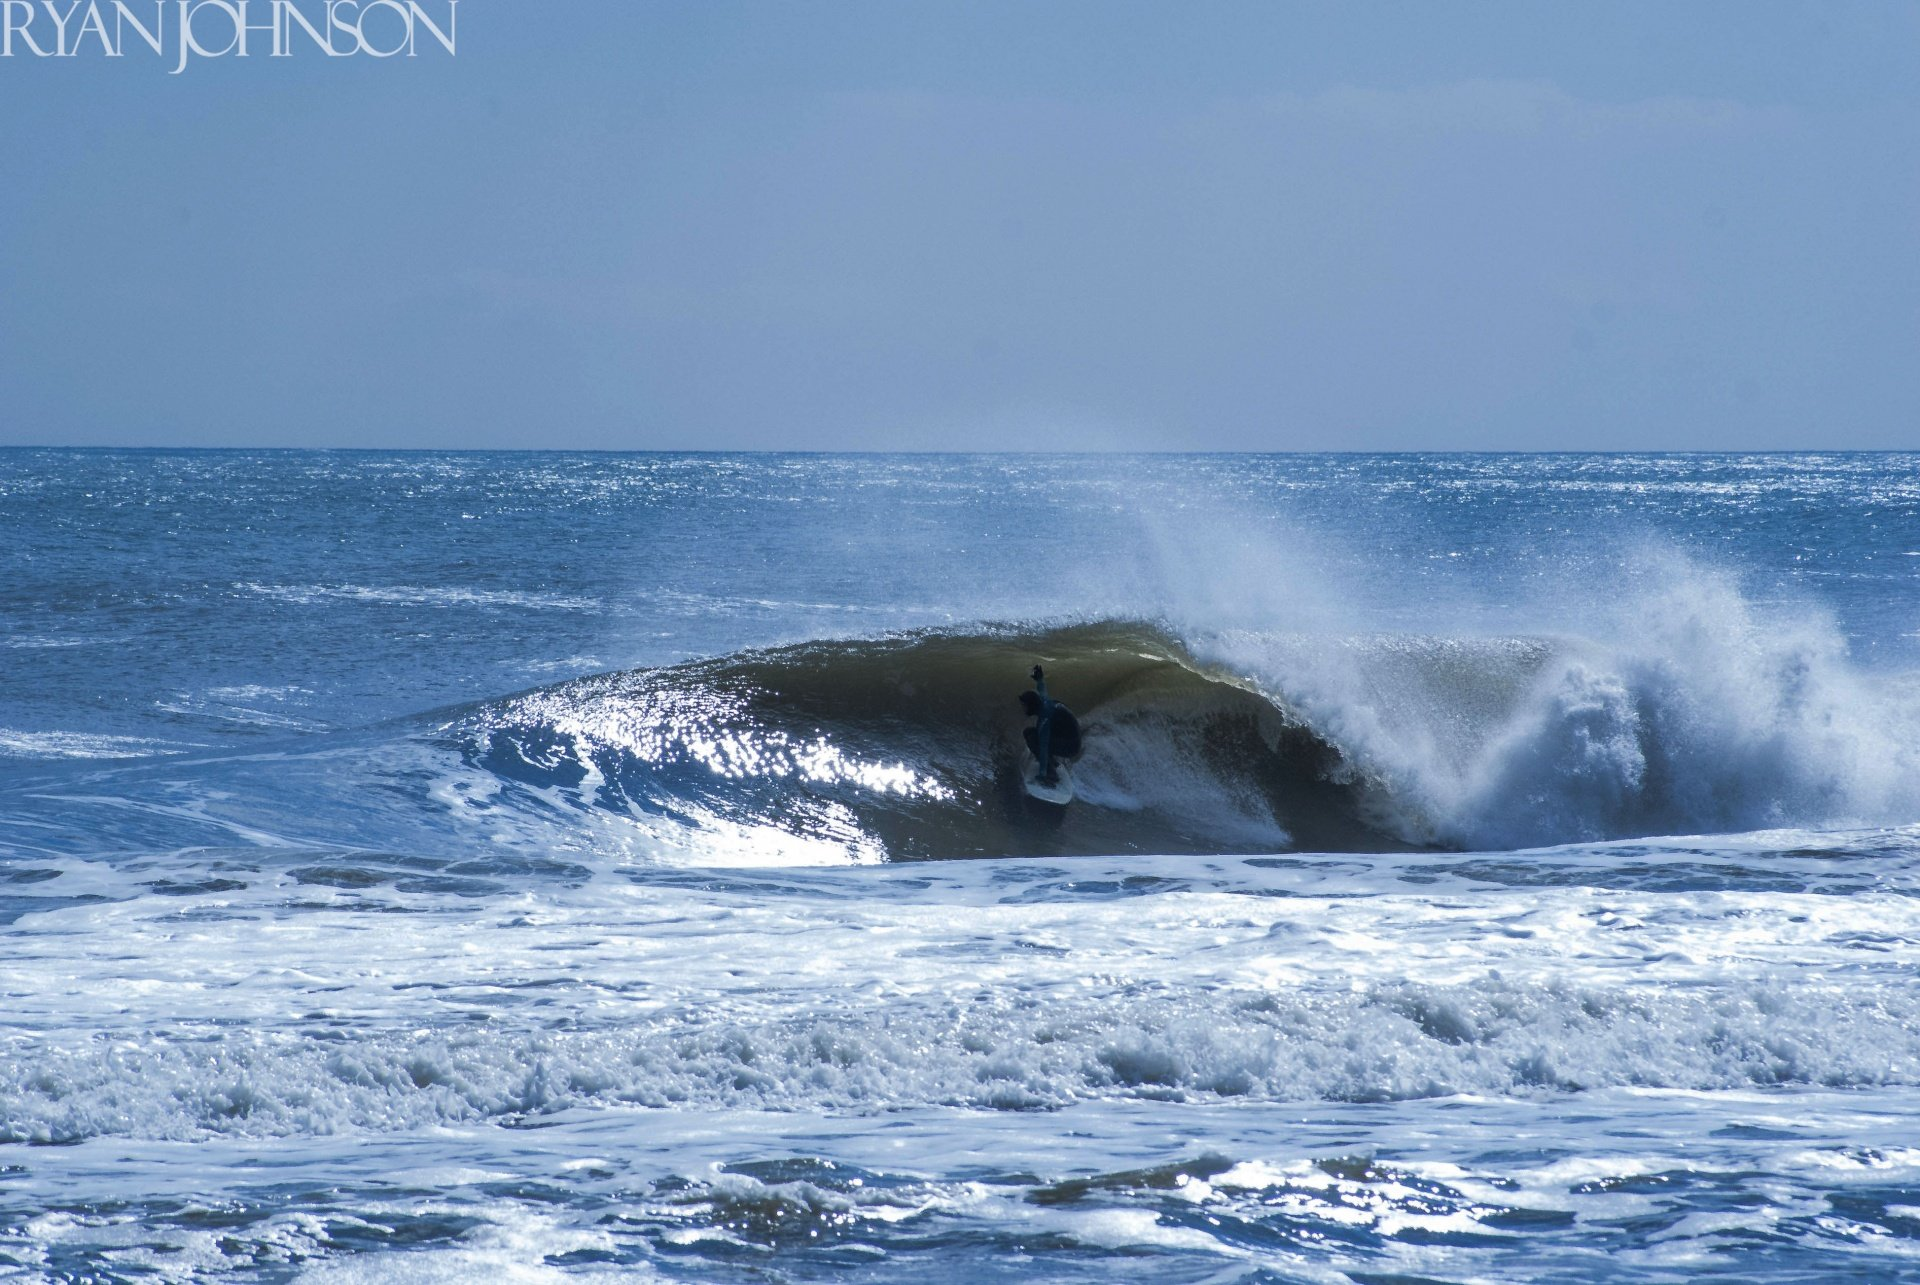 RyanJohnson's photo of Surf City